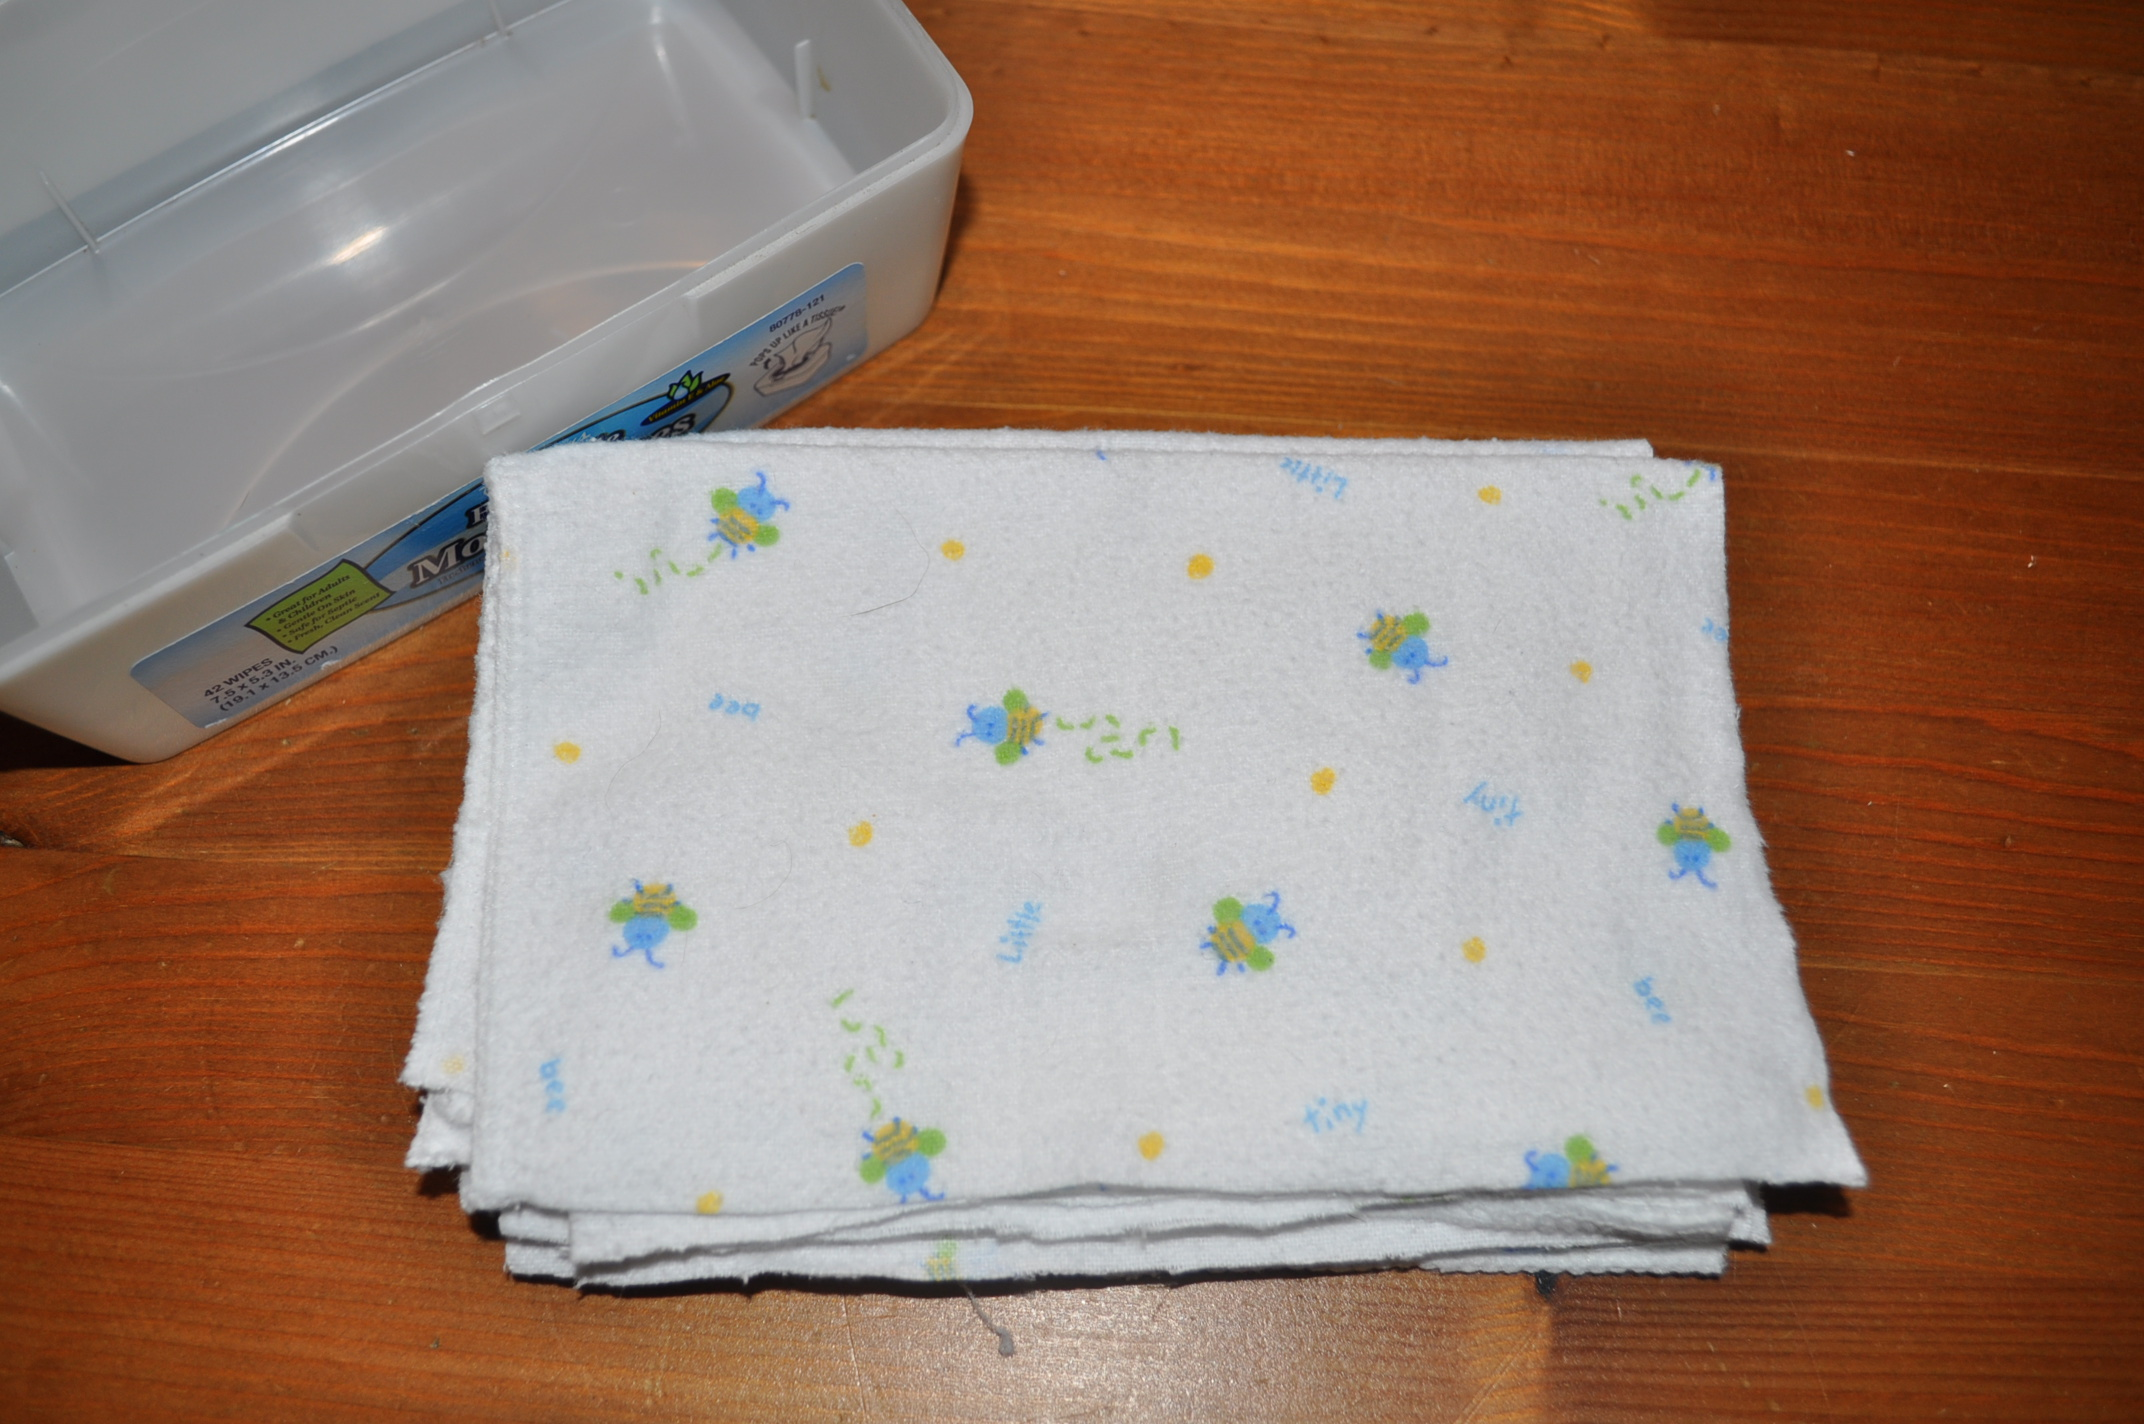 How To Make Homemade Dryer Sheets